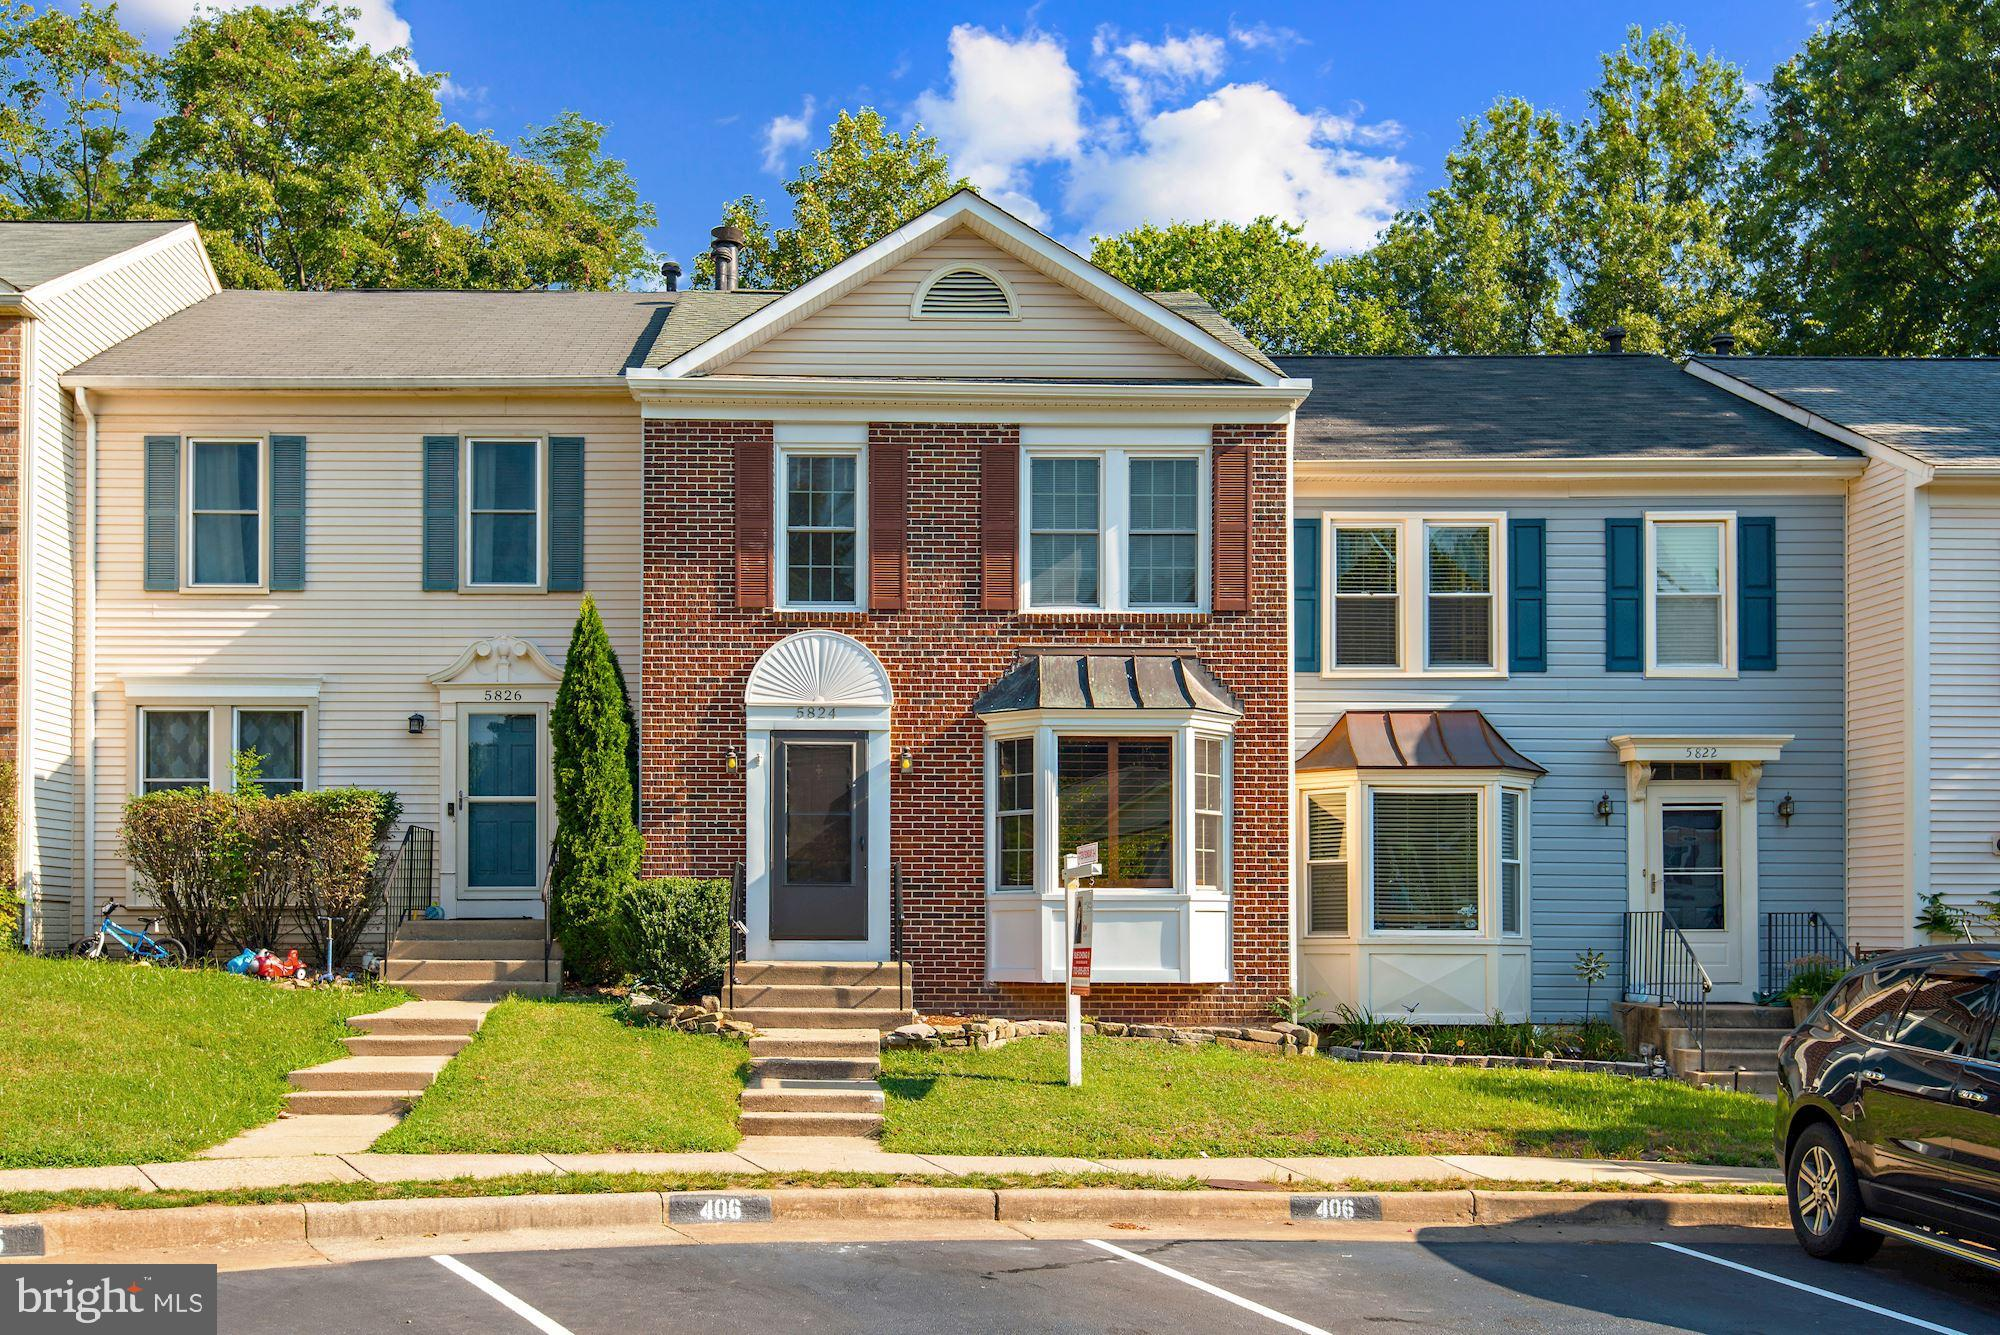 Move in ready, beautifully upgraded with Wide Plank hardwoods, Upgraded Bathrooms, Upgraded kitchen